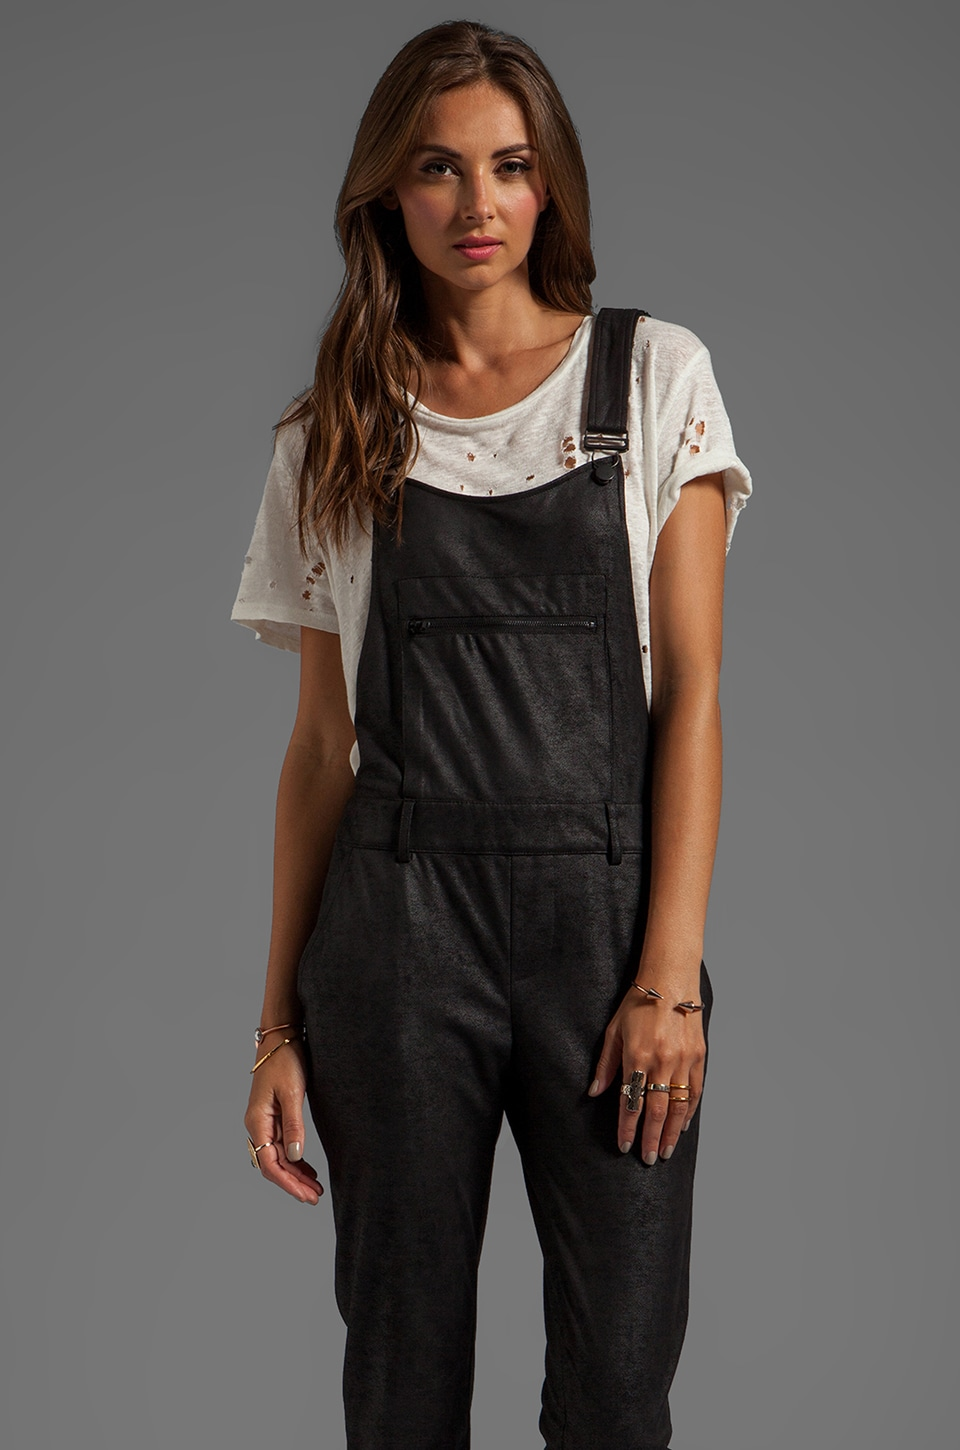 Capulet Suede/Leather Overall in Black